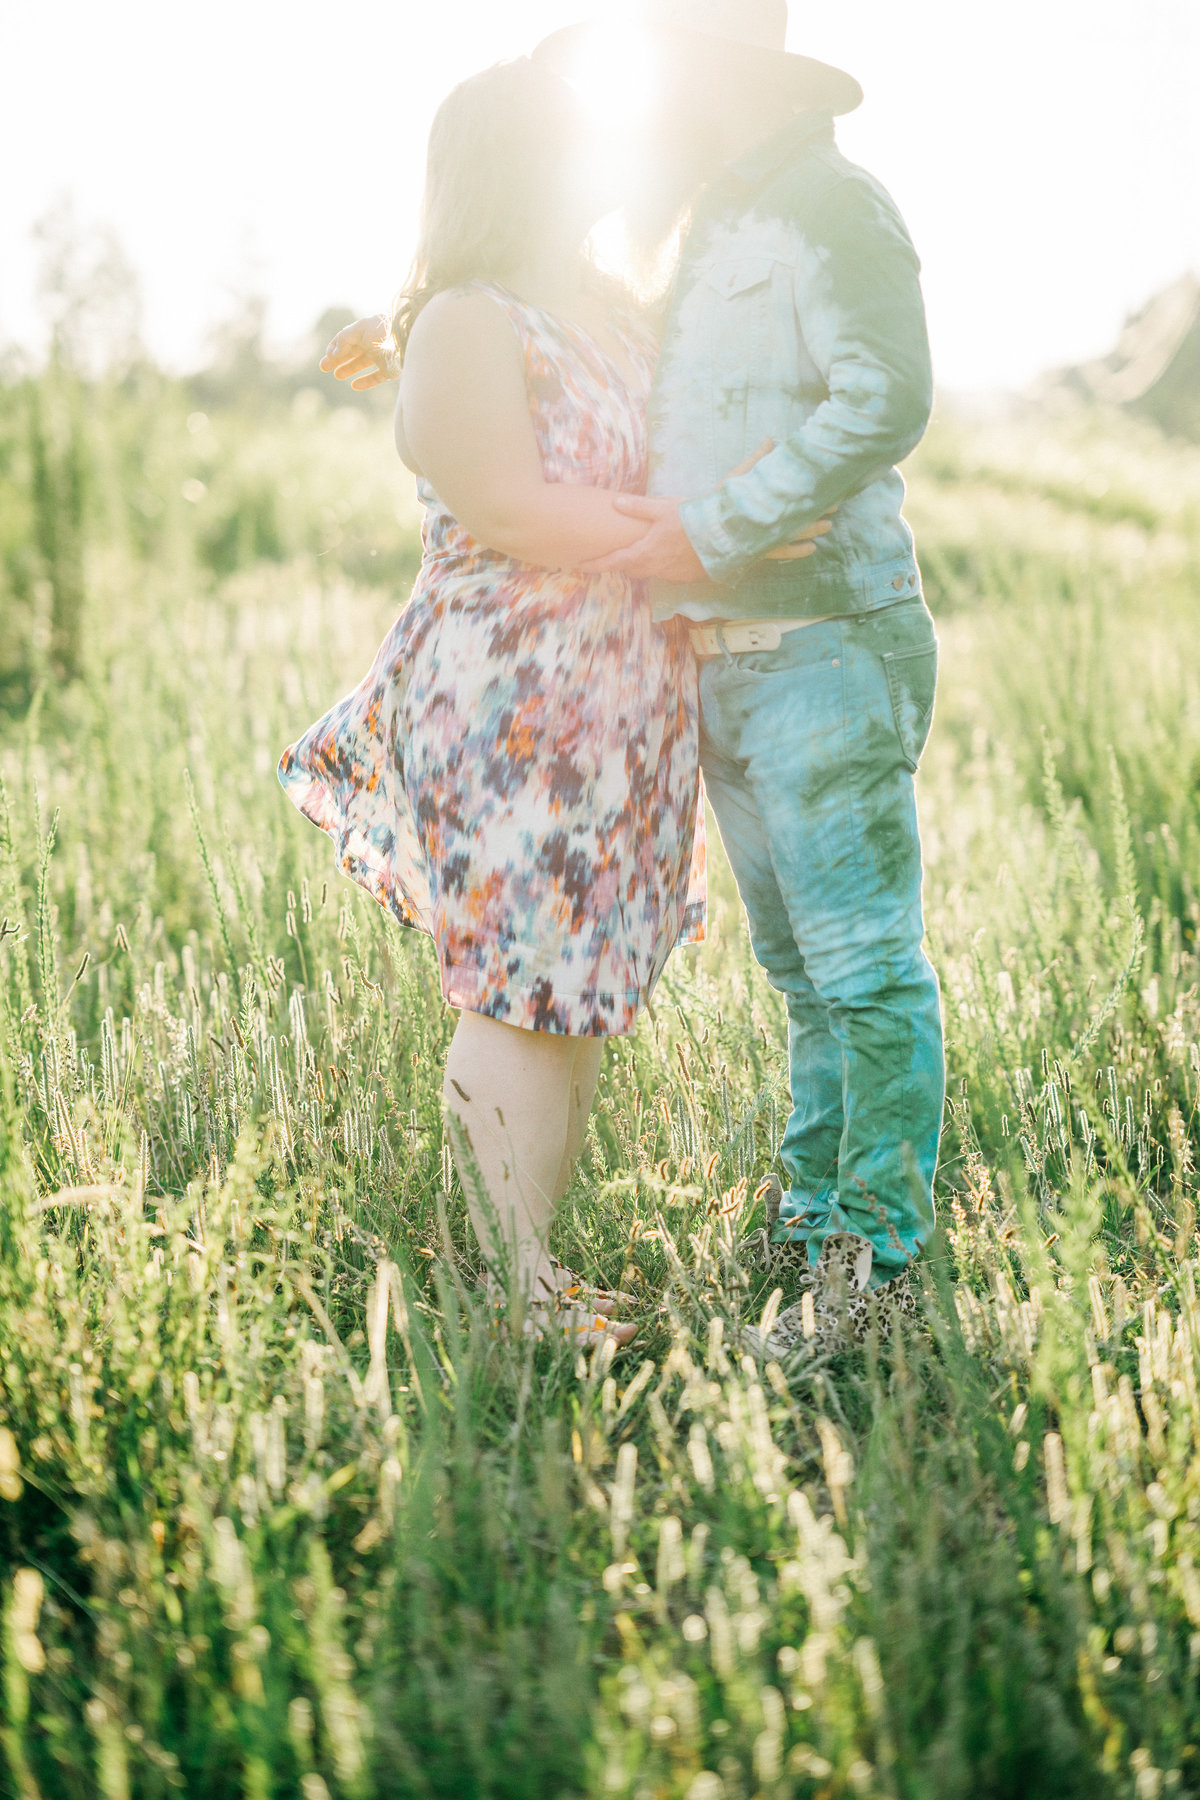 Kathy+Jonah_DukeForestPortraitSession-38